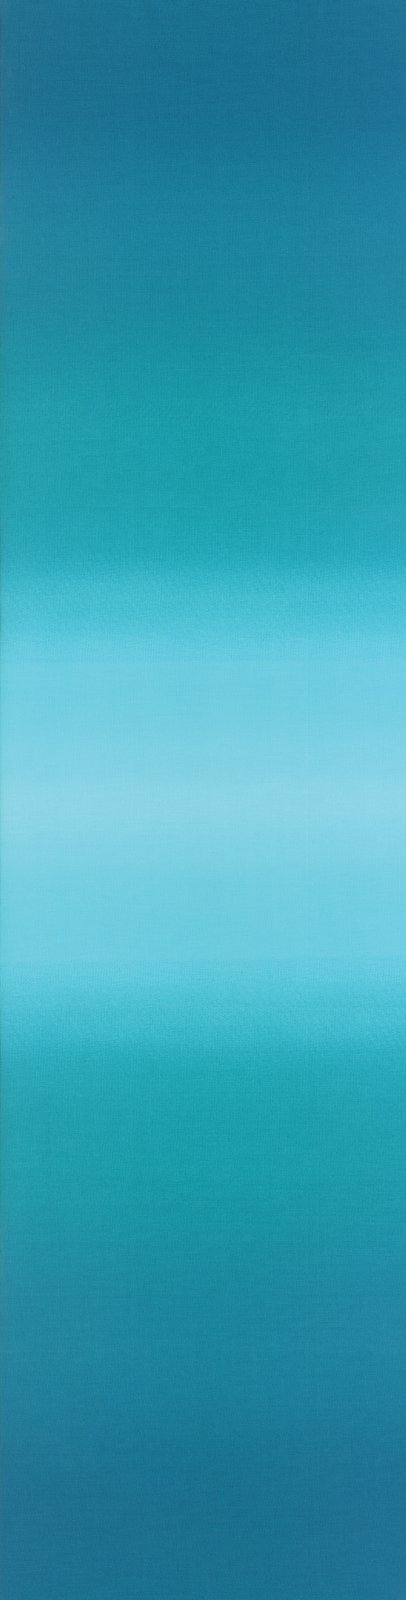 Ombre 10800-209 Turquoise